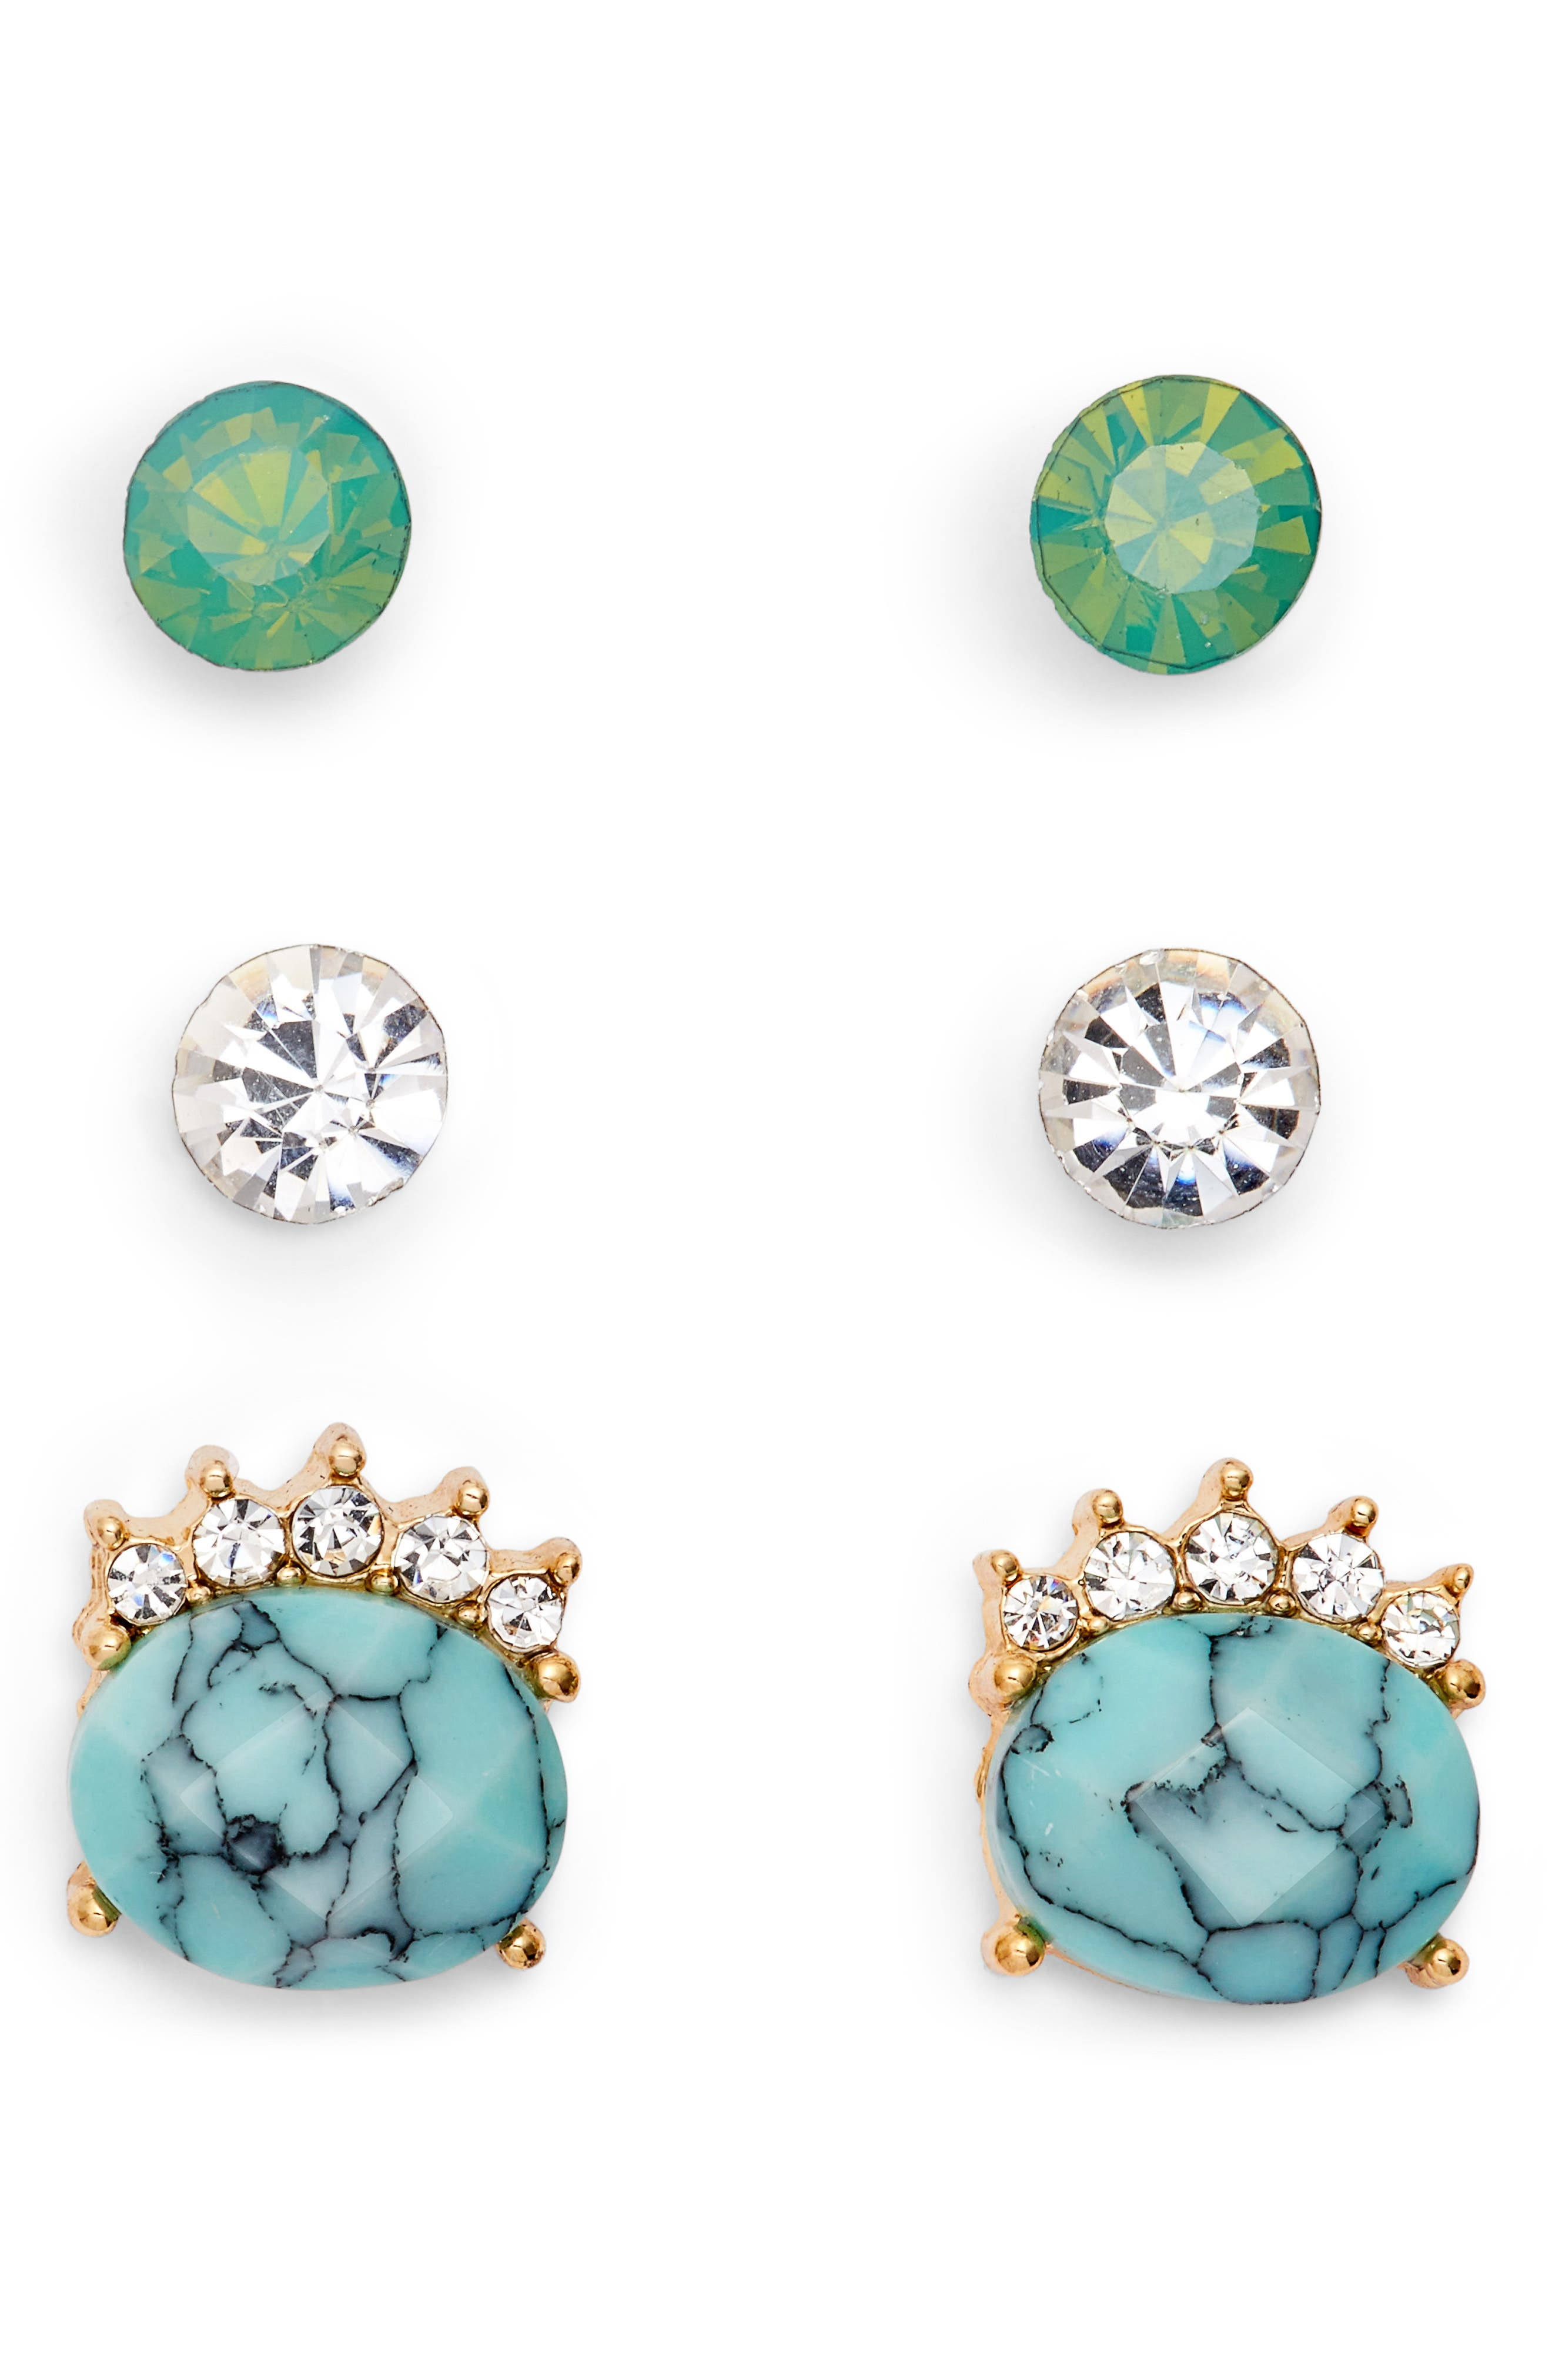 Assorted 3-Pack Turquoise Stud Earrings,                             Main thumbnail 1, color,                             400